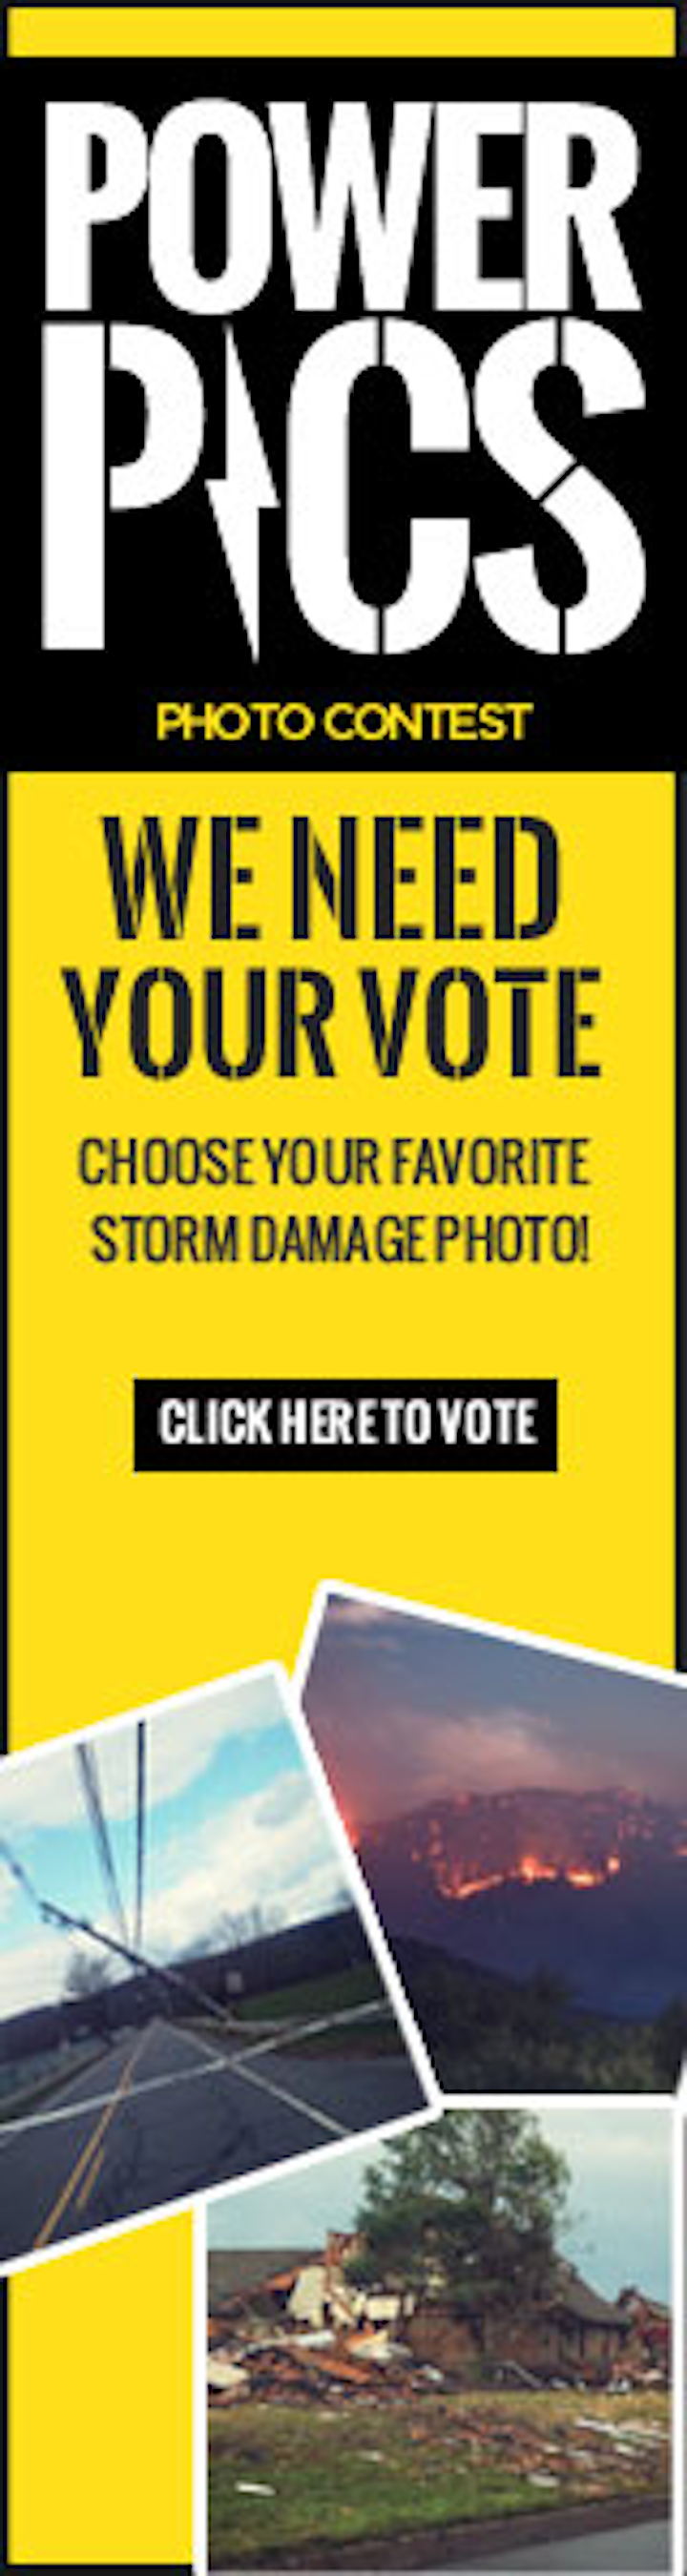 Content Dam Up En Articles 2013 08 Four More Days To Vote For Your Favorite Power Pic Leftcolumn Article Thumbnailimage File